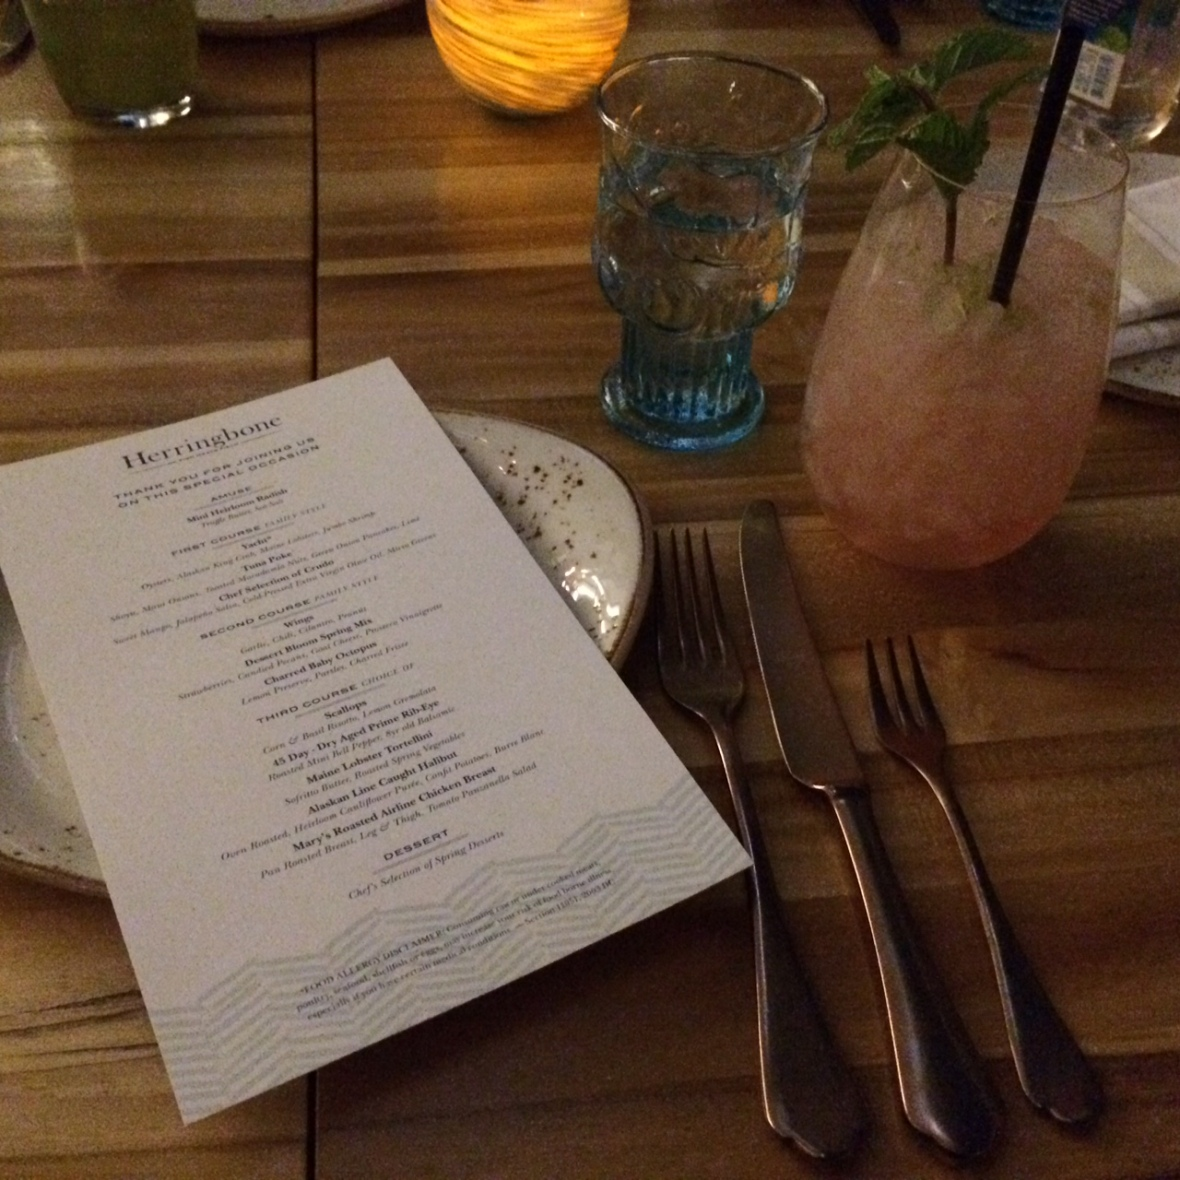 Harringbone menu